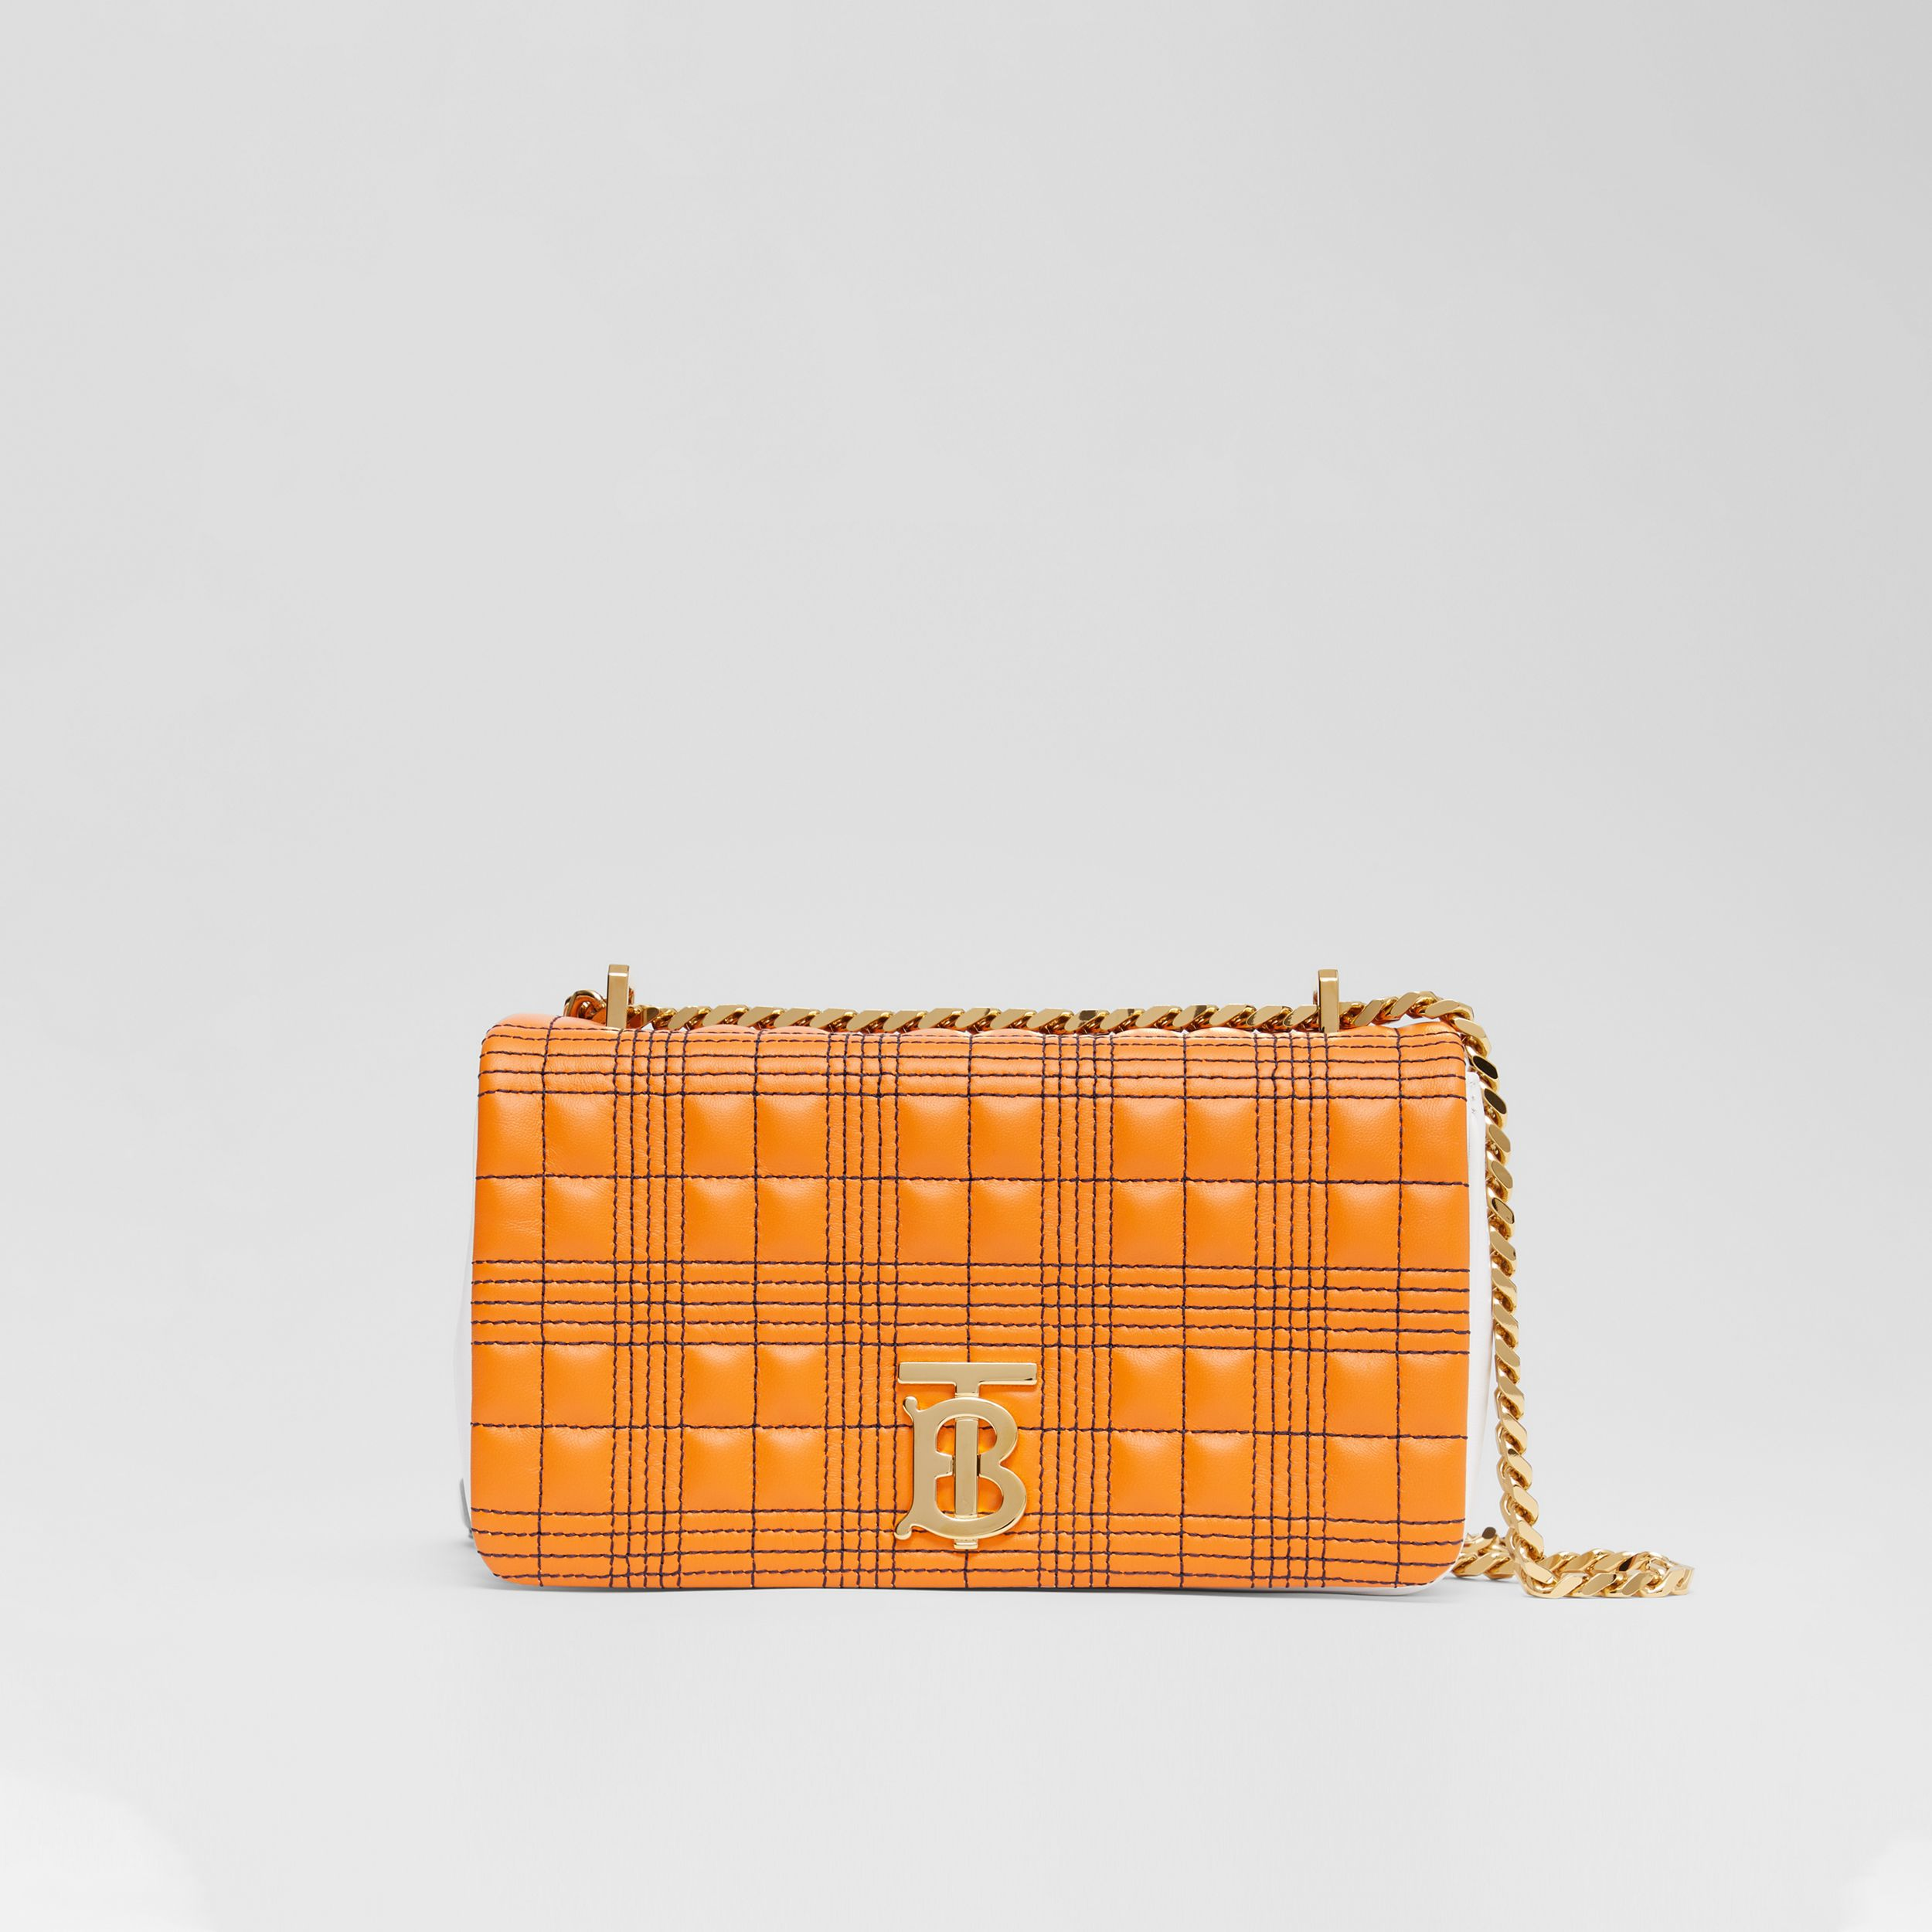 Small Quilted Tri-tone Lambskin Lola Bag in Orange/white - Women | Burberry - 1